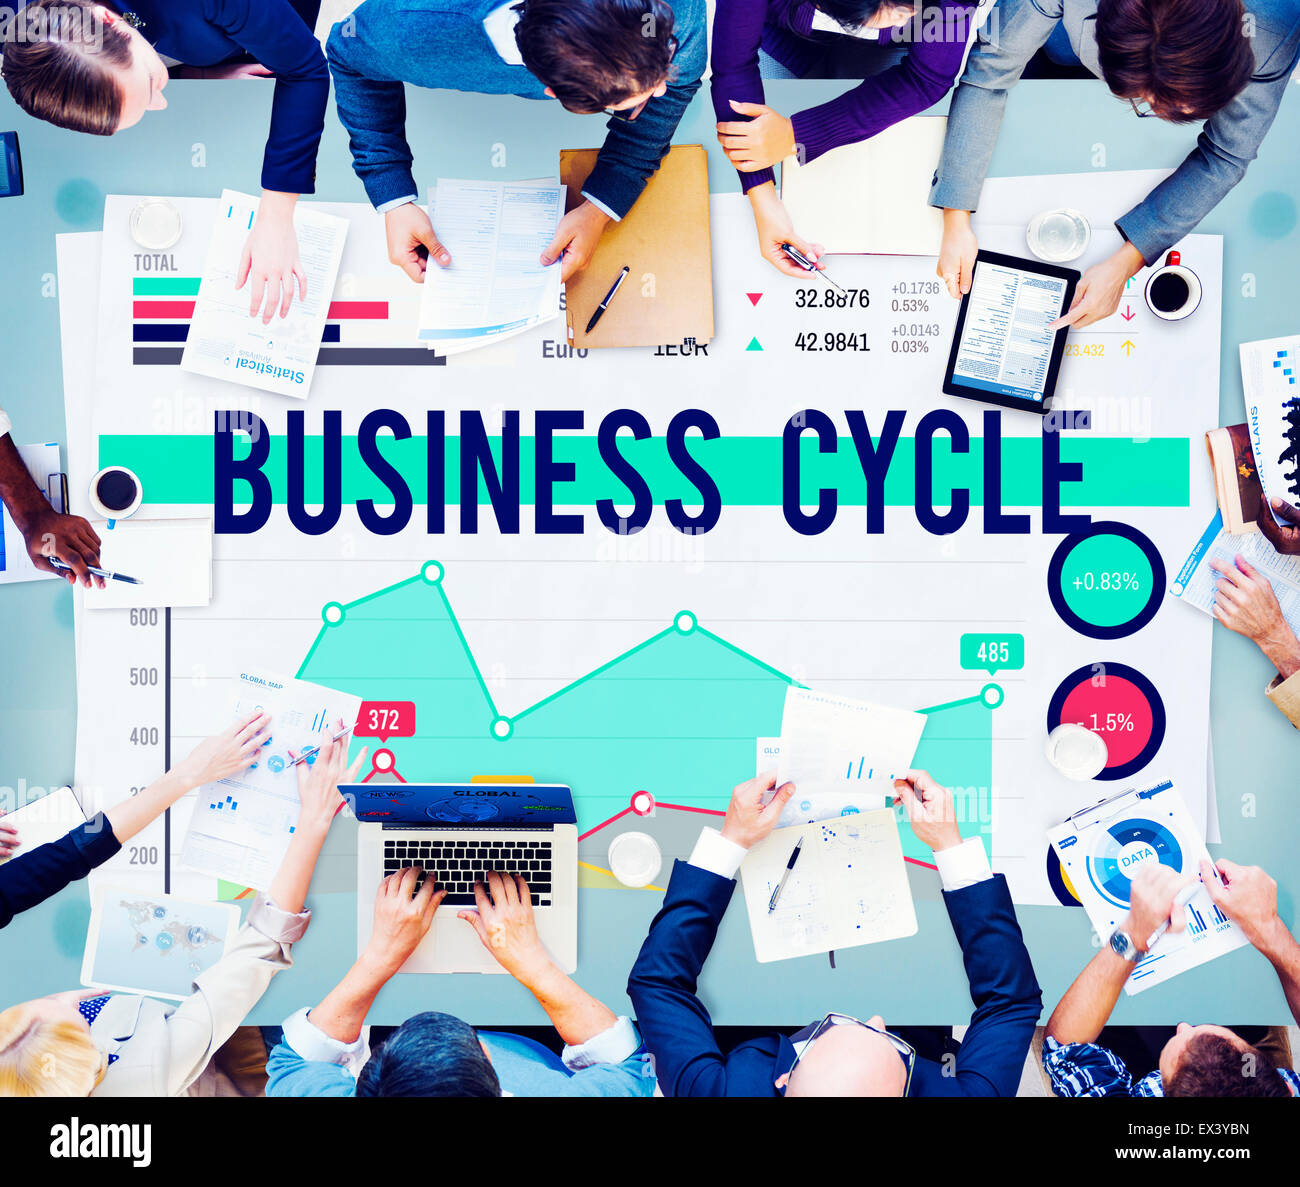 Business Cycle Progress Process Strategy Concept - Stock Image